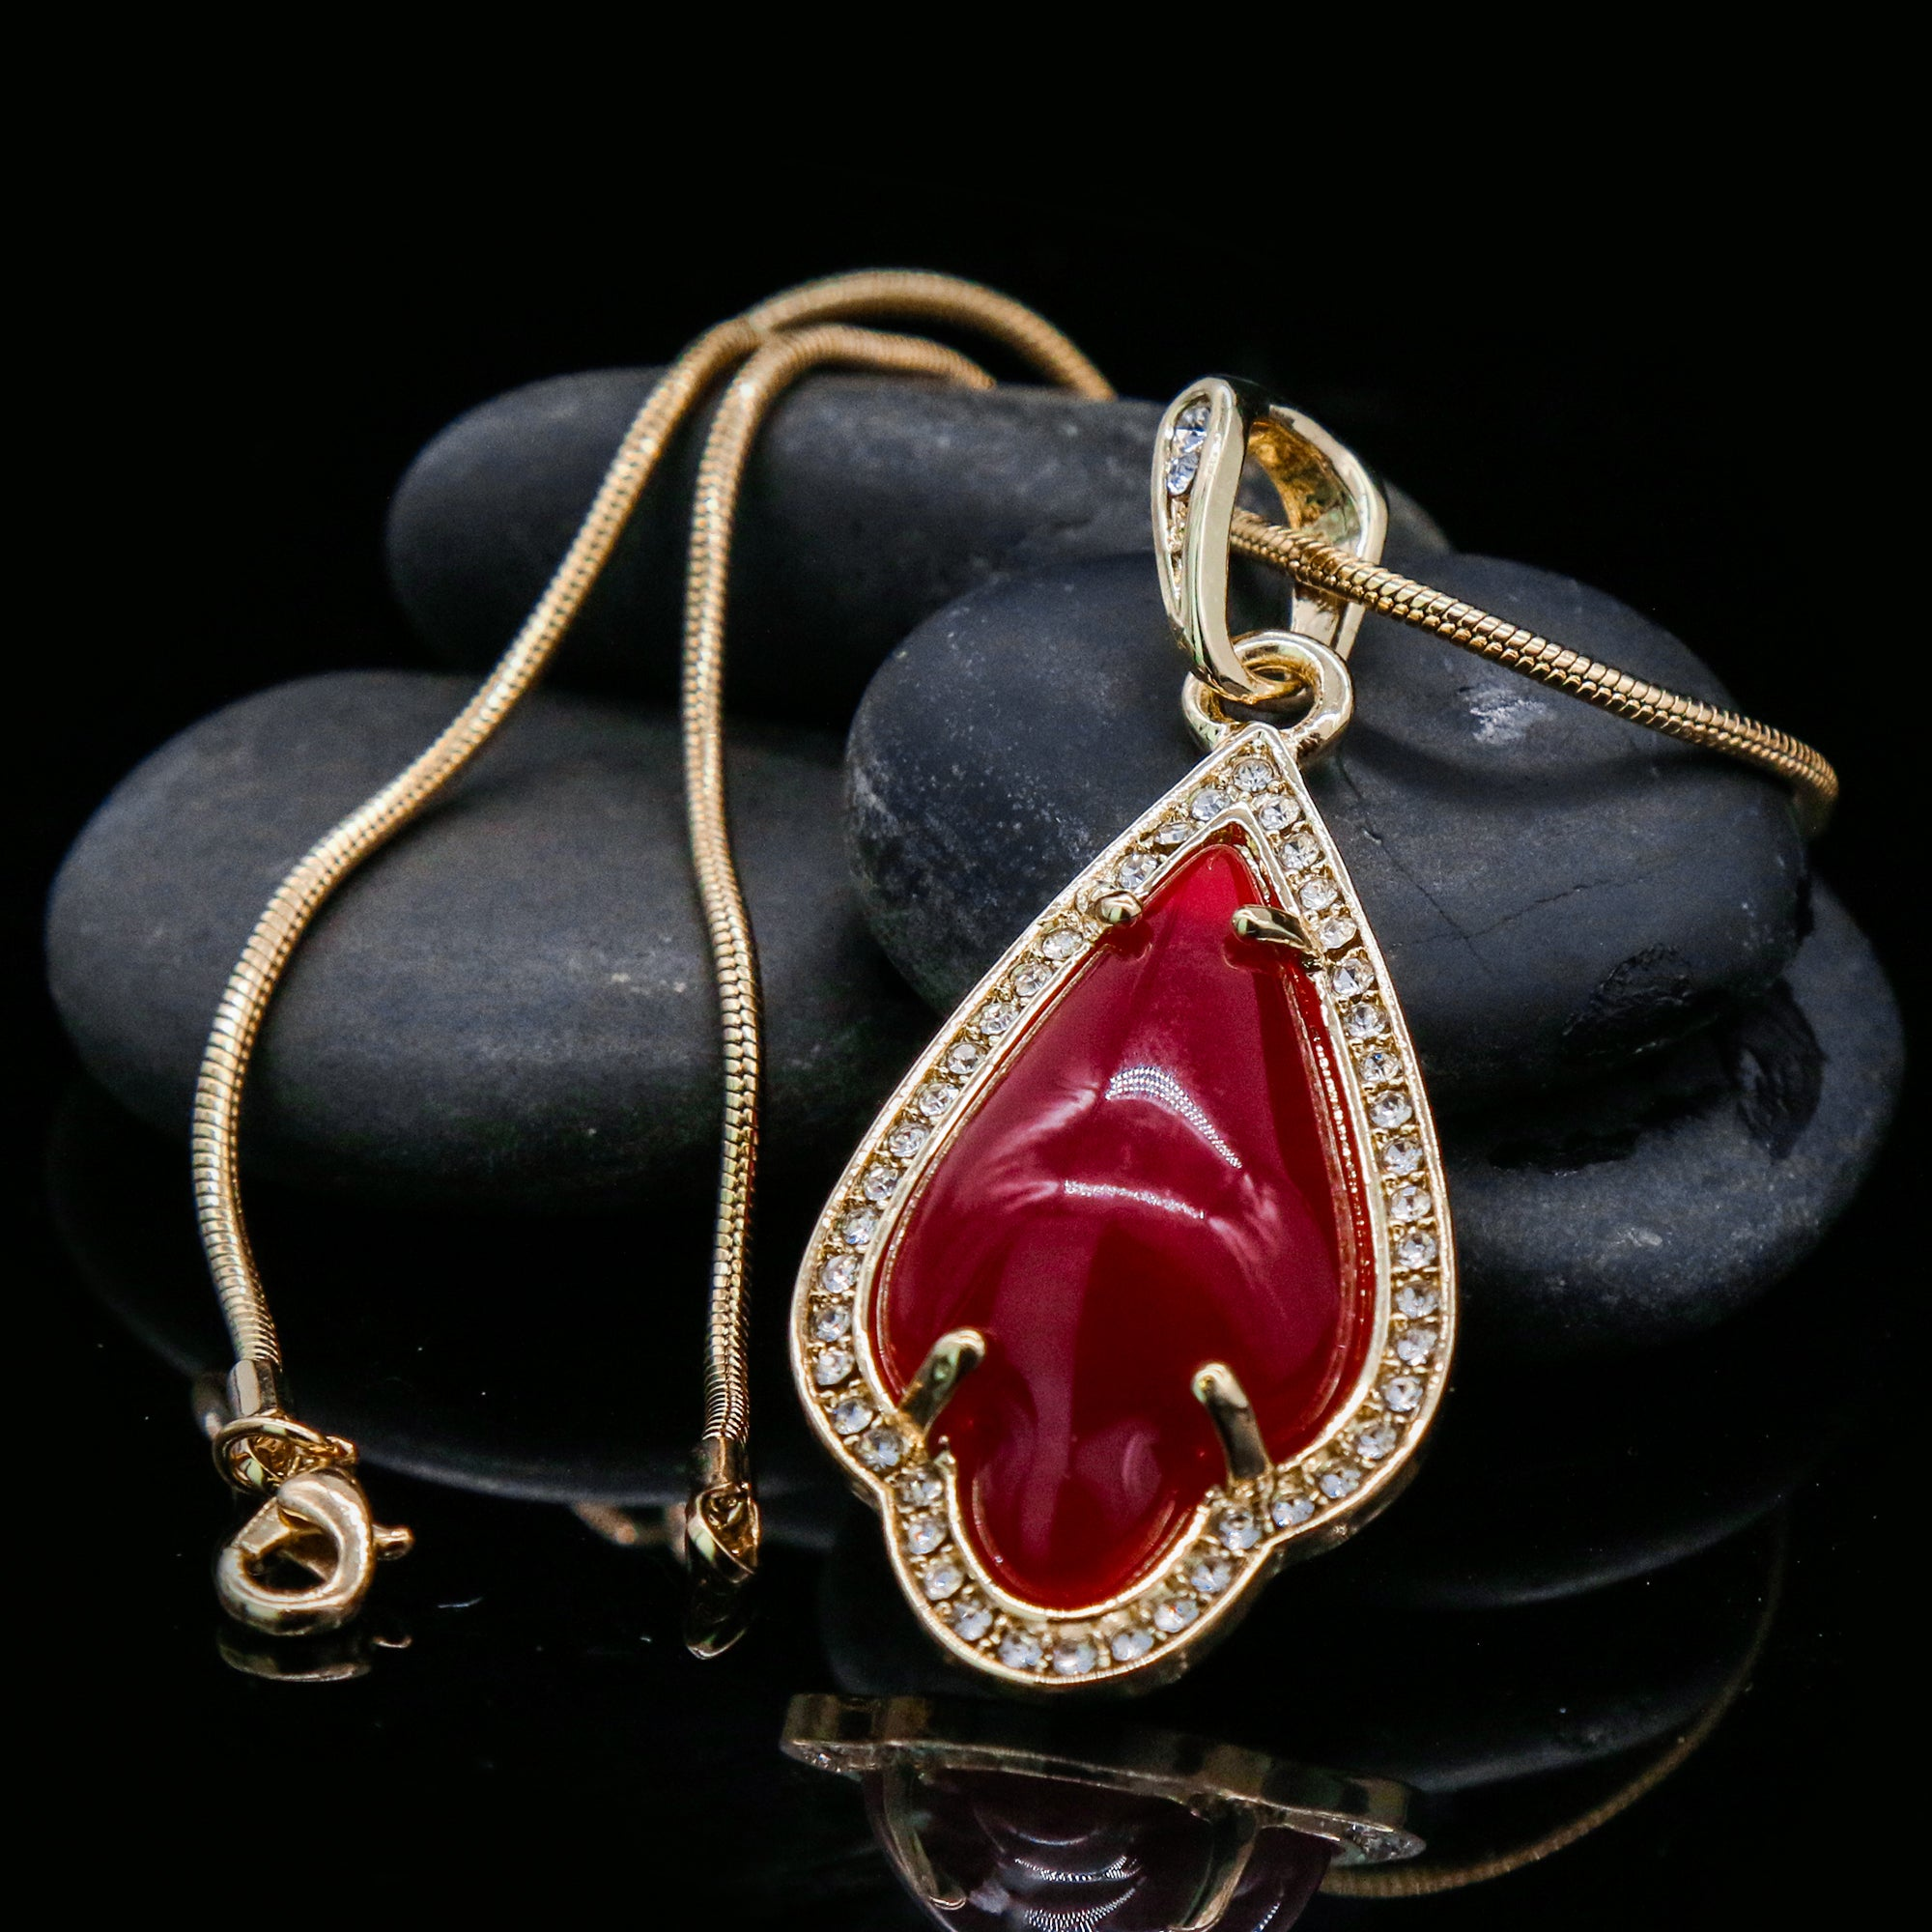 Red Women's Pendants 14K Gold Plated Lab Diamond Mounted Curved Tear Resin Jade High Fashion Jewelry Chain Pendant Necklaces